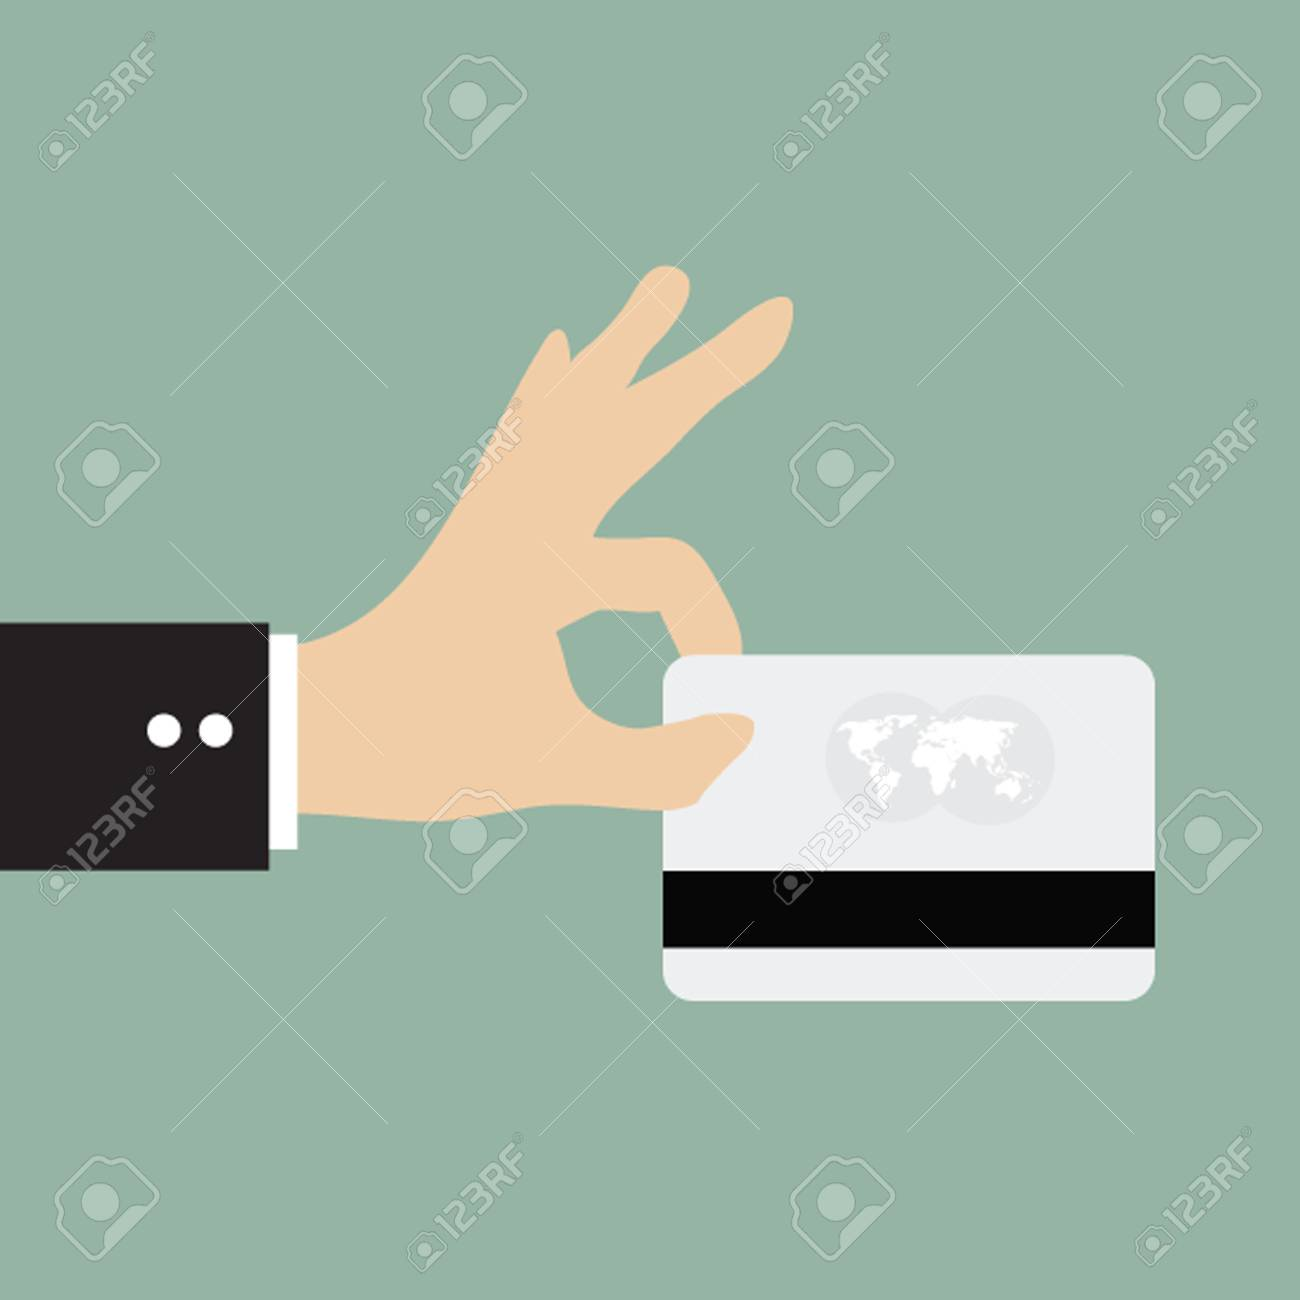 Business Man Using Credit Card Payment Royalty Free Cliparts ...